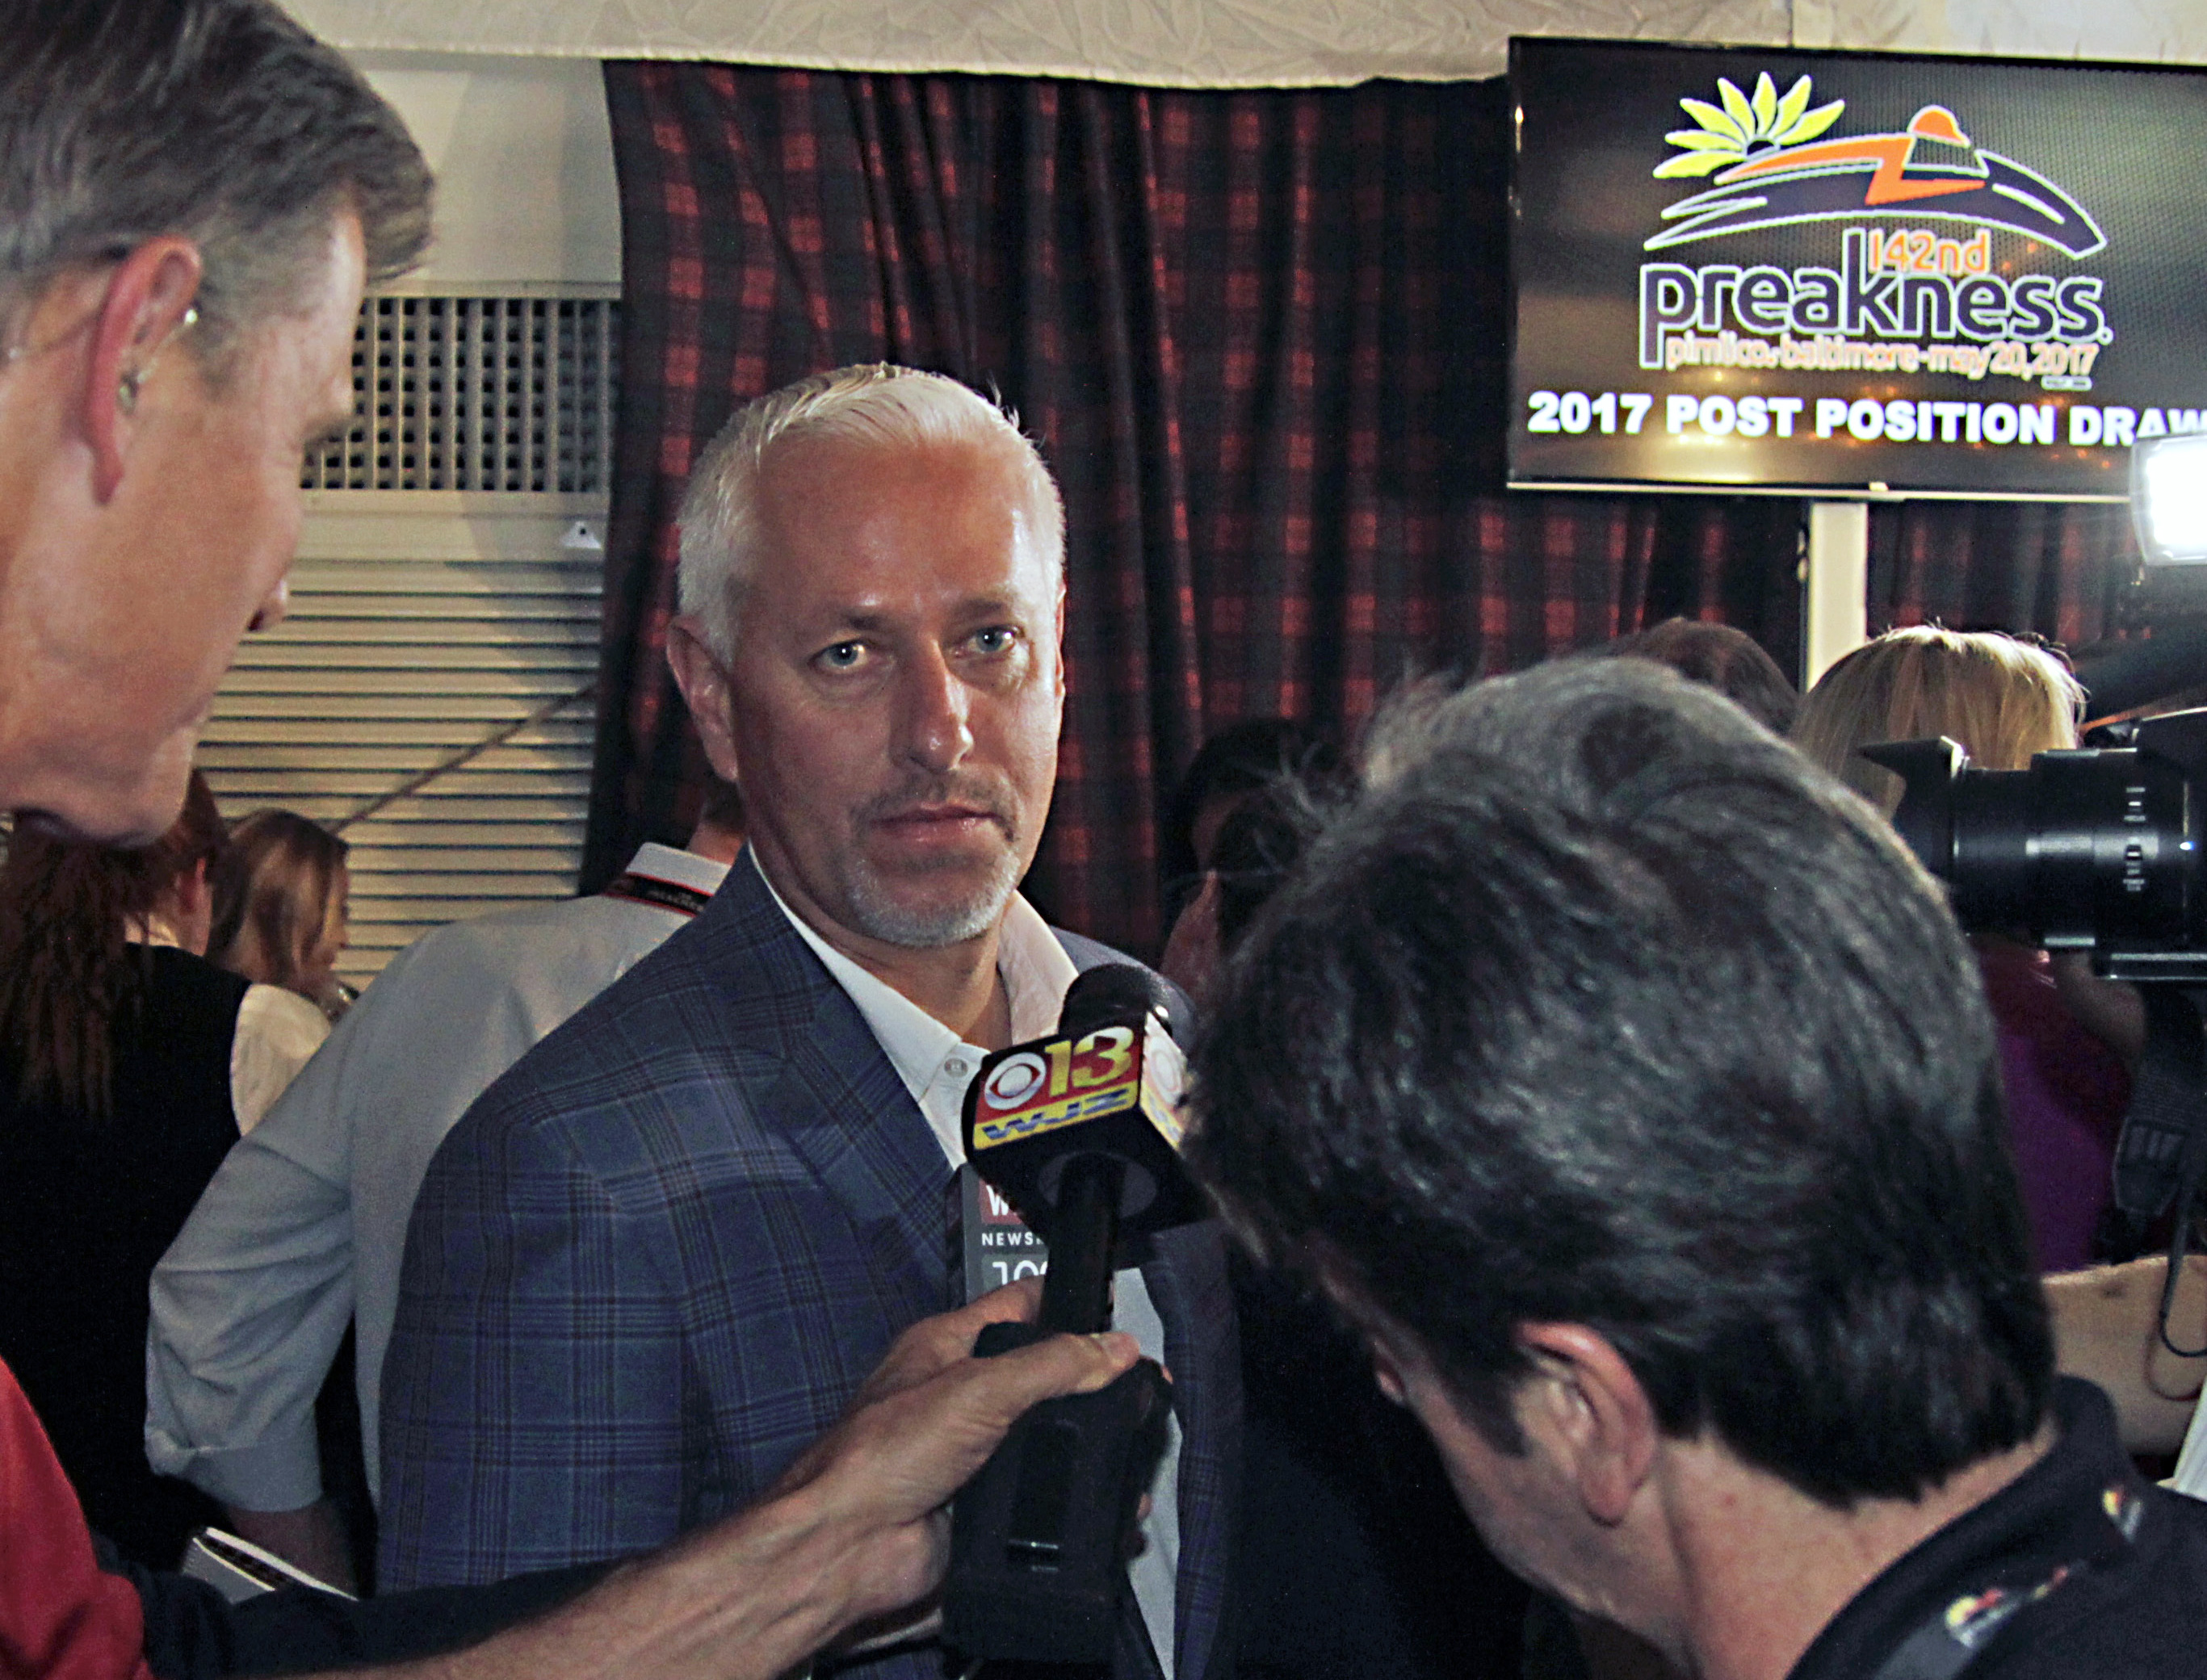 Always Dreaming trainer Todd Pletcher listens to questions following the post-position draw for Saturday's Preakness Stakes horse race, Wednesday, May 17, 2017, at Pimlico in Baltimore. Always Dreaming will break from post position No. 4. (AP Photo/Garry